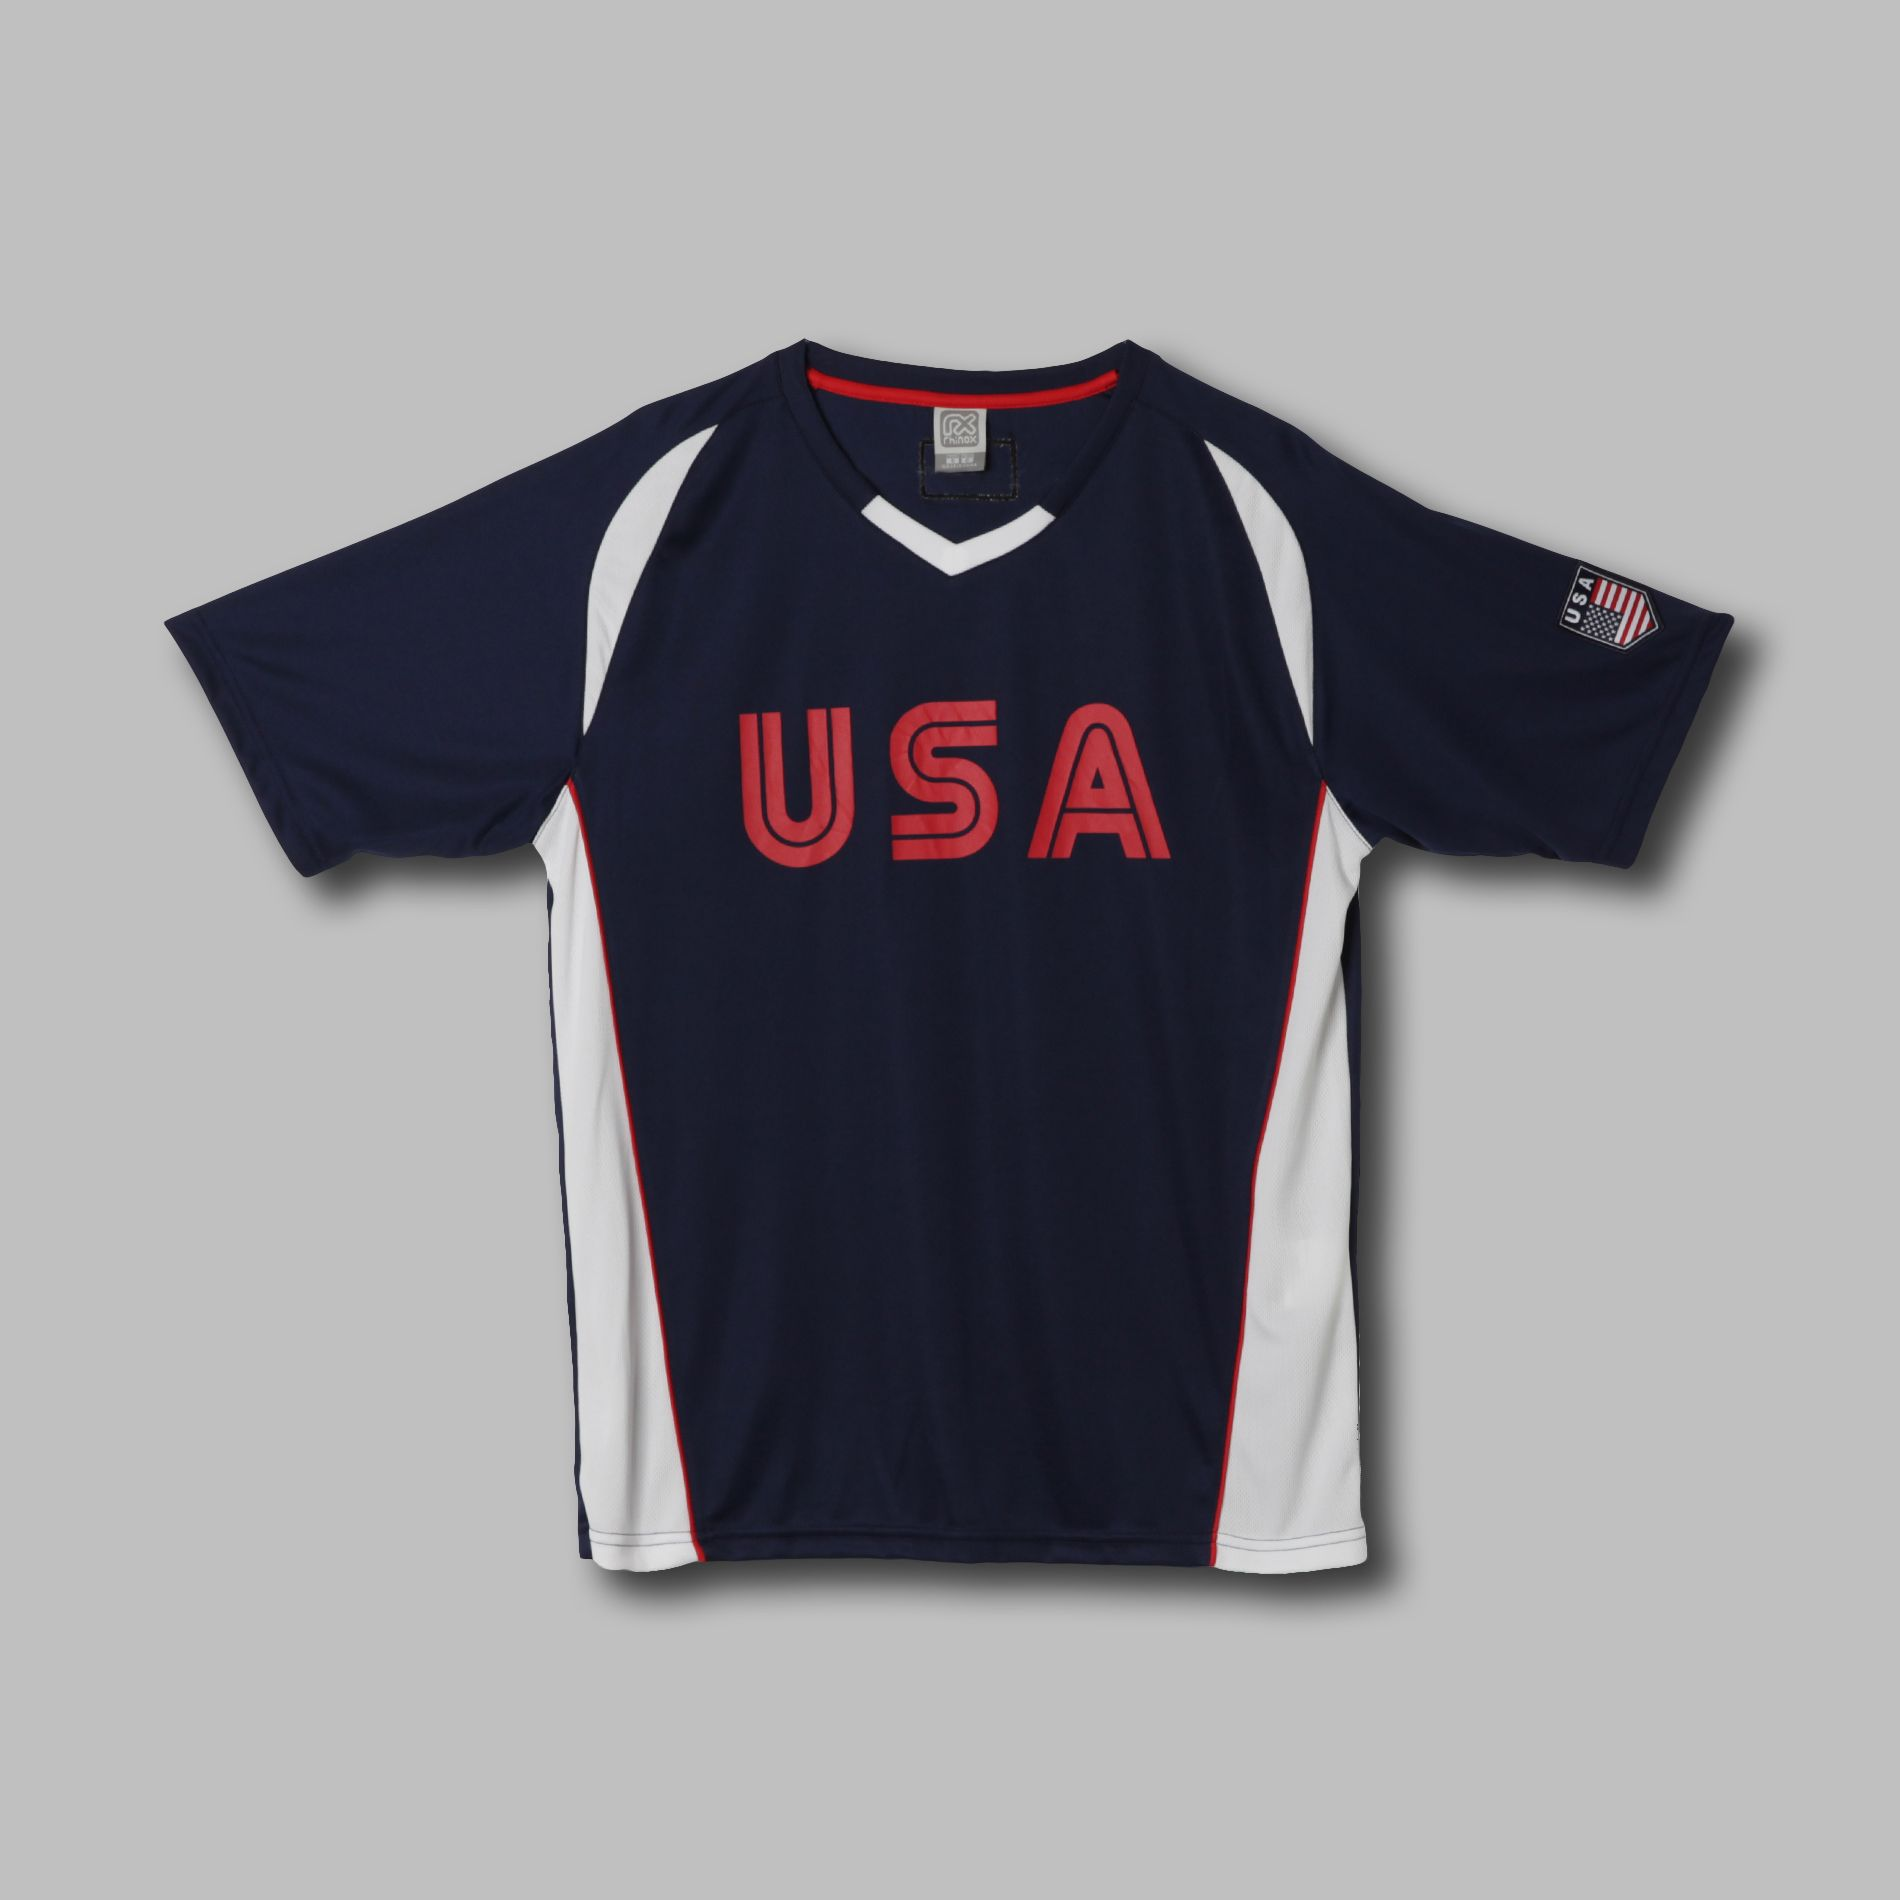 RHINOX Men's Soccer Jersey FIFA USA at Kmart.com